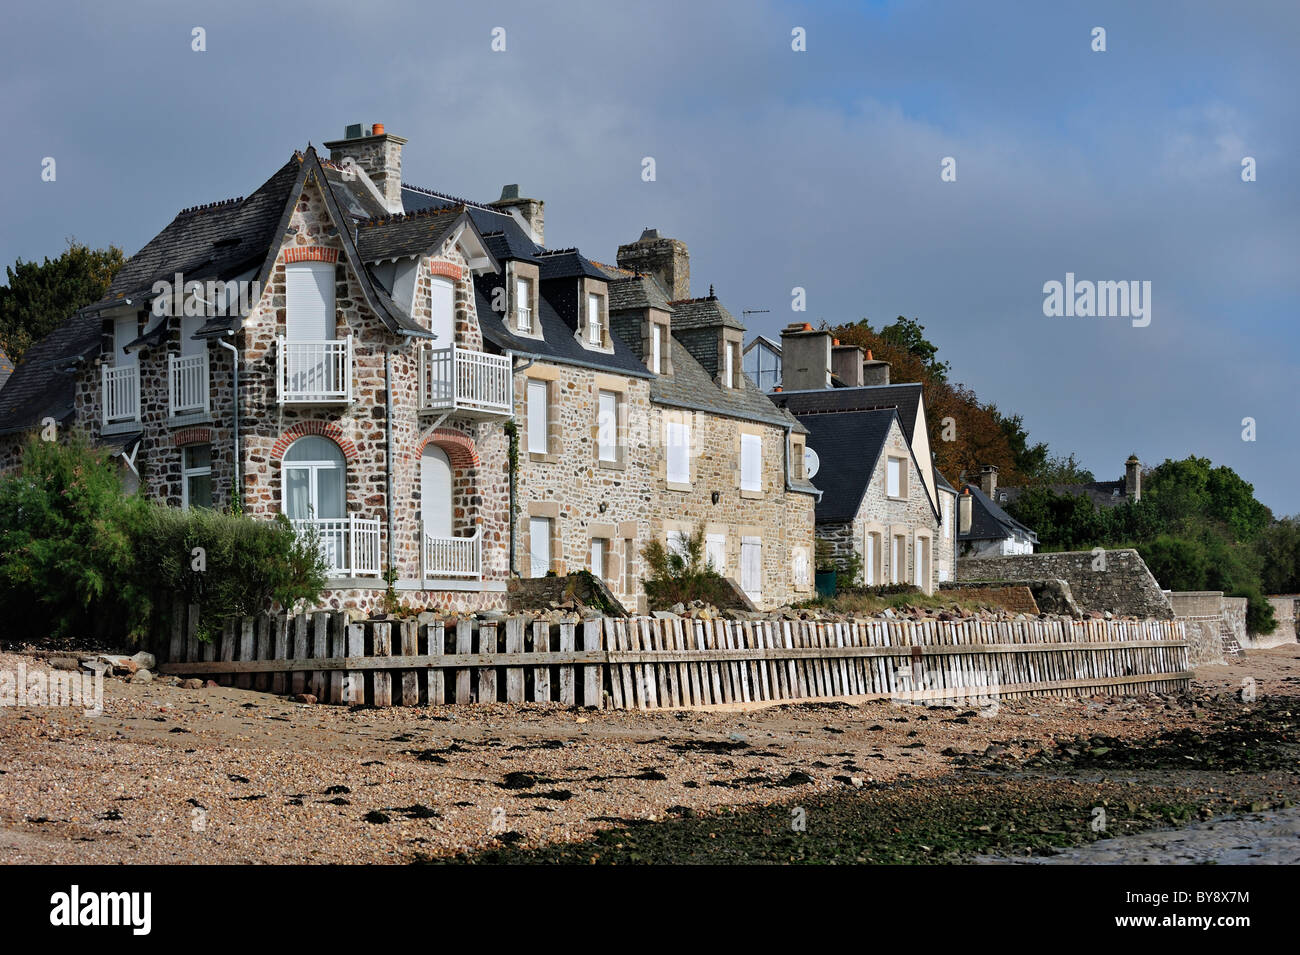 Typical house on the beach at Morsalines, Normandy, France - Stock Image